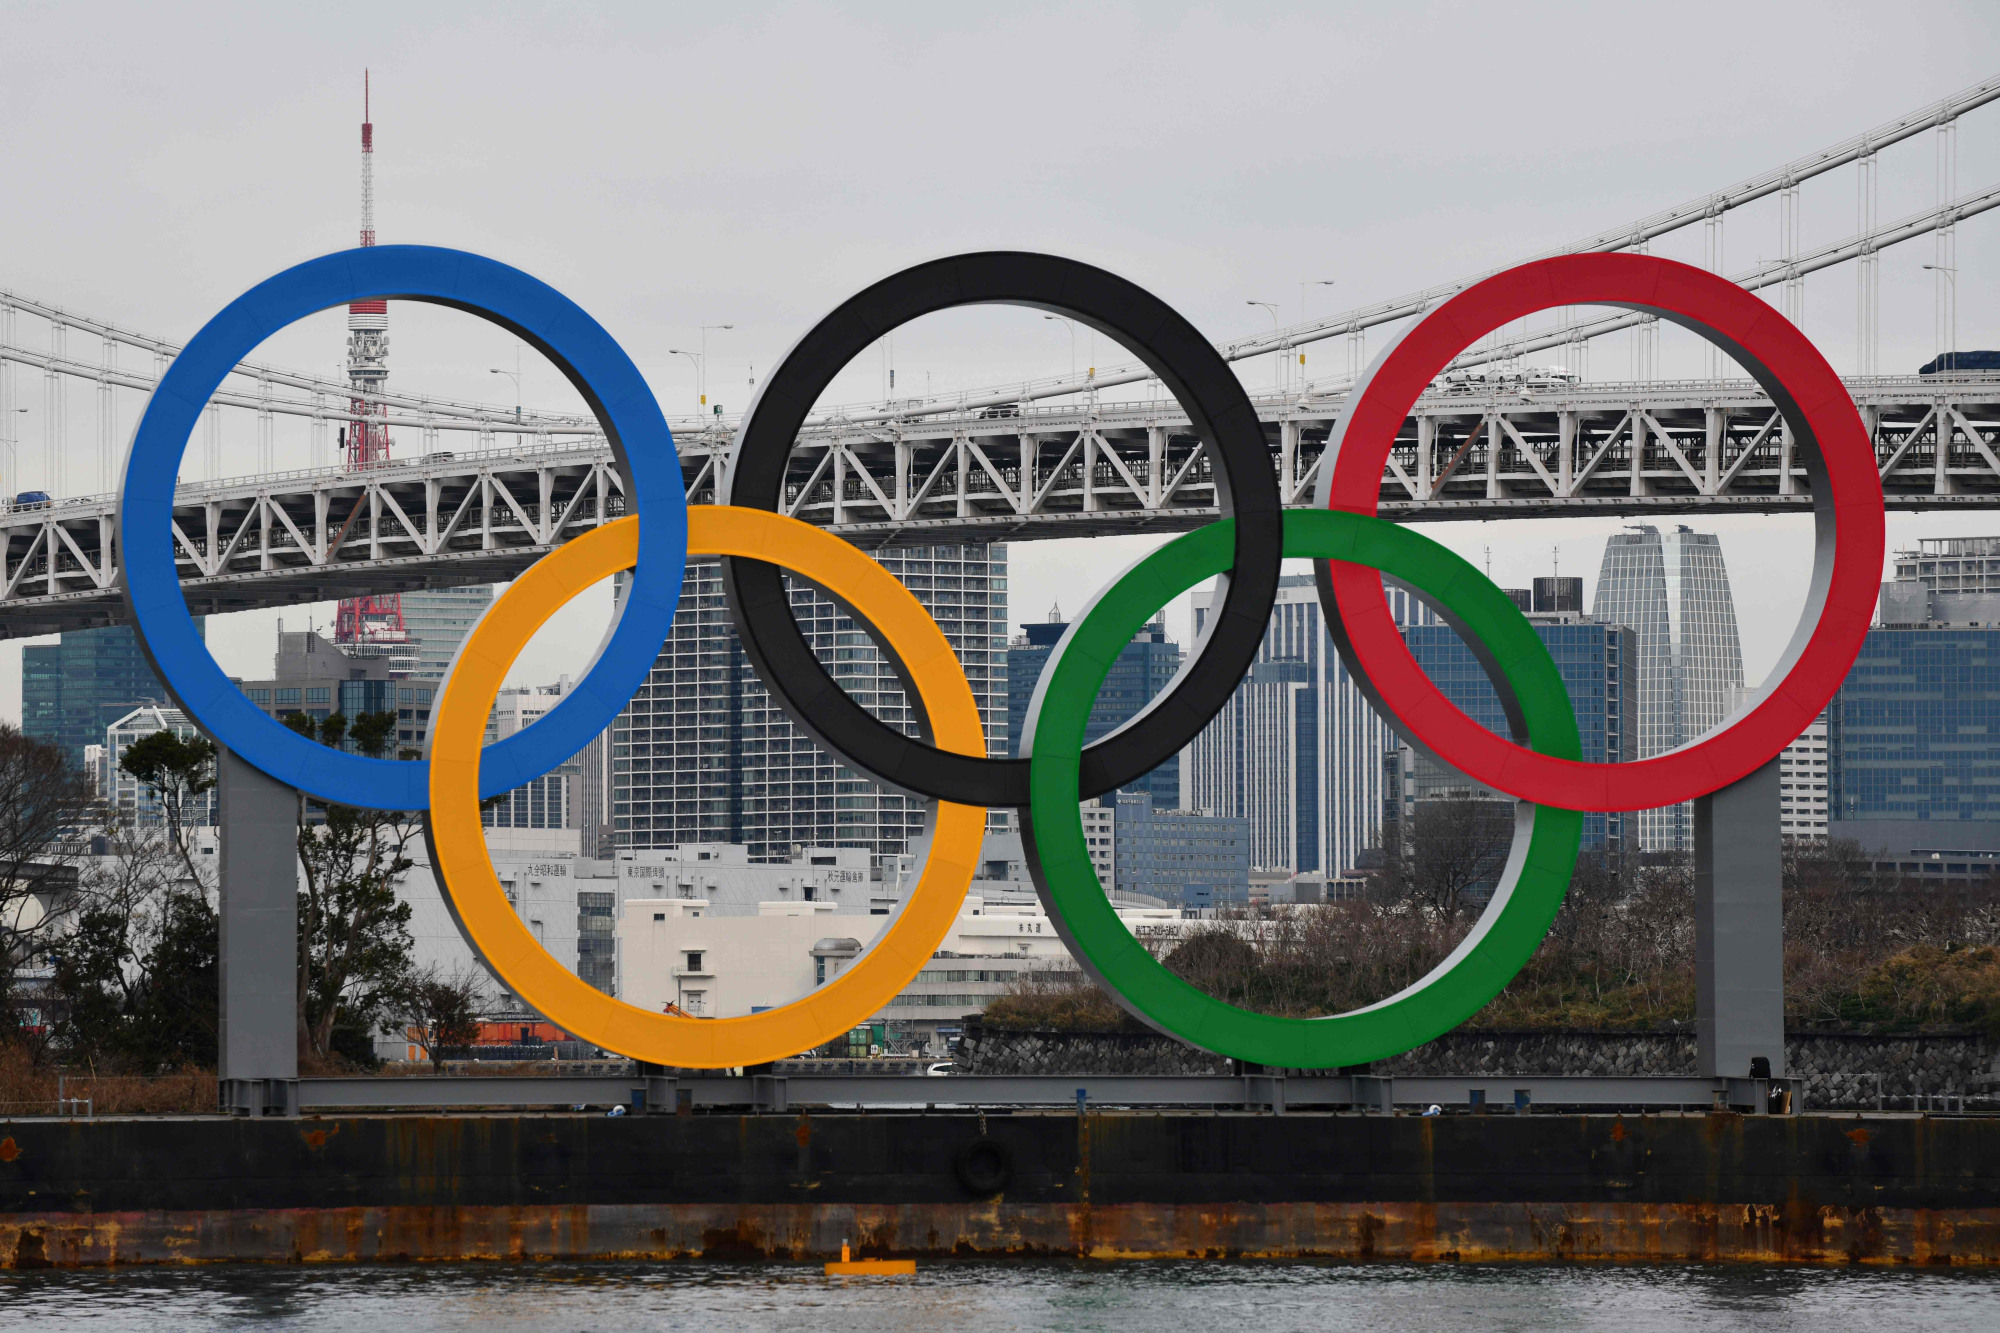 A barge hauls the Olympic logo on Saturday to install in Tokyo's Odaiba district. The global spotlight will shine on Japan this summer when it hosts the Olympics and Paralympics. | AFP-JIJI